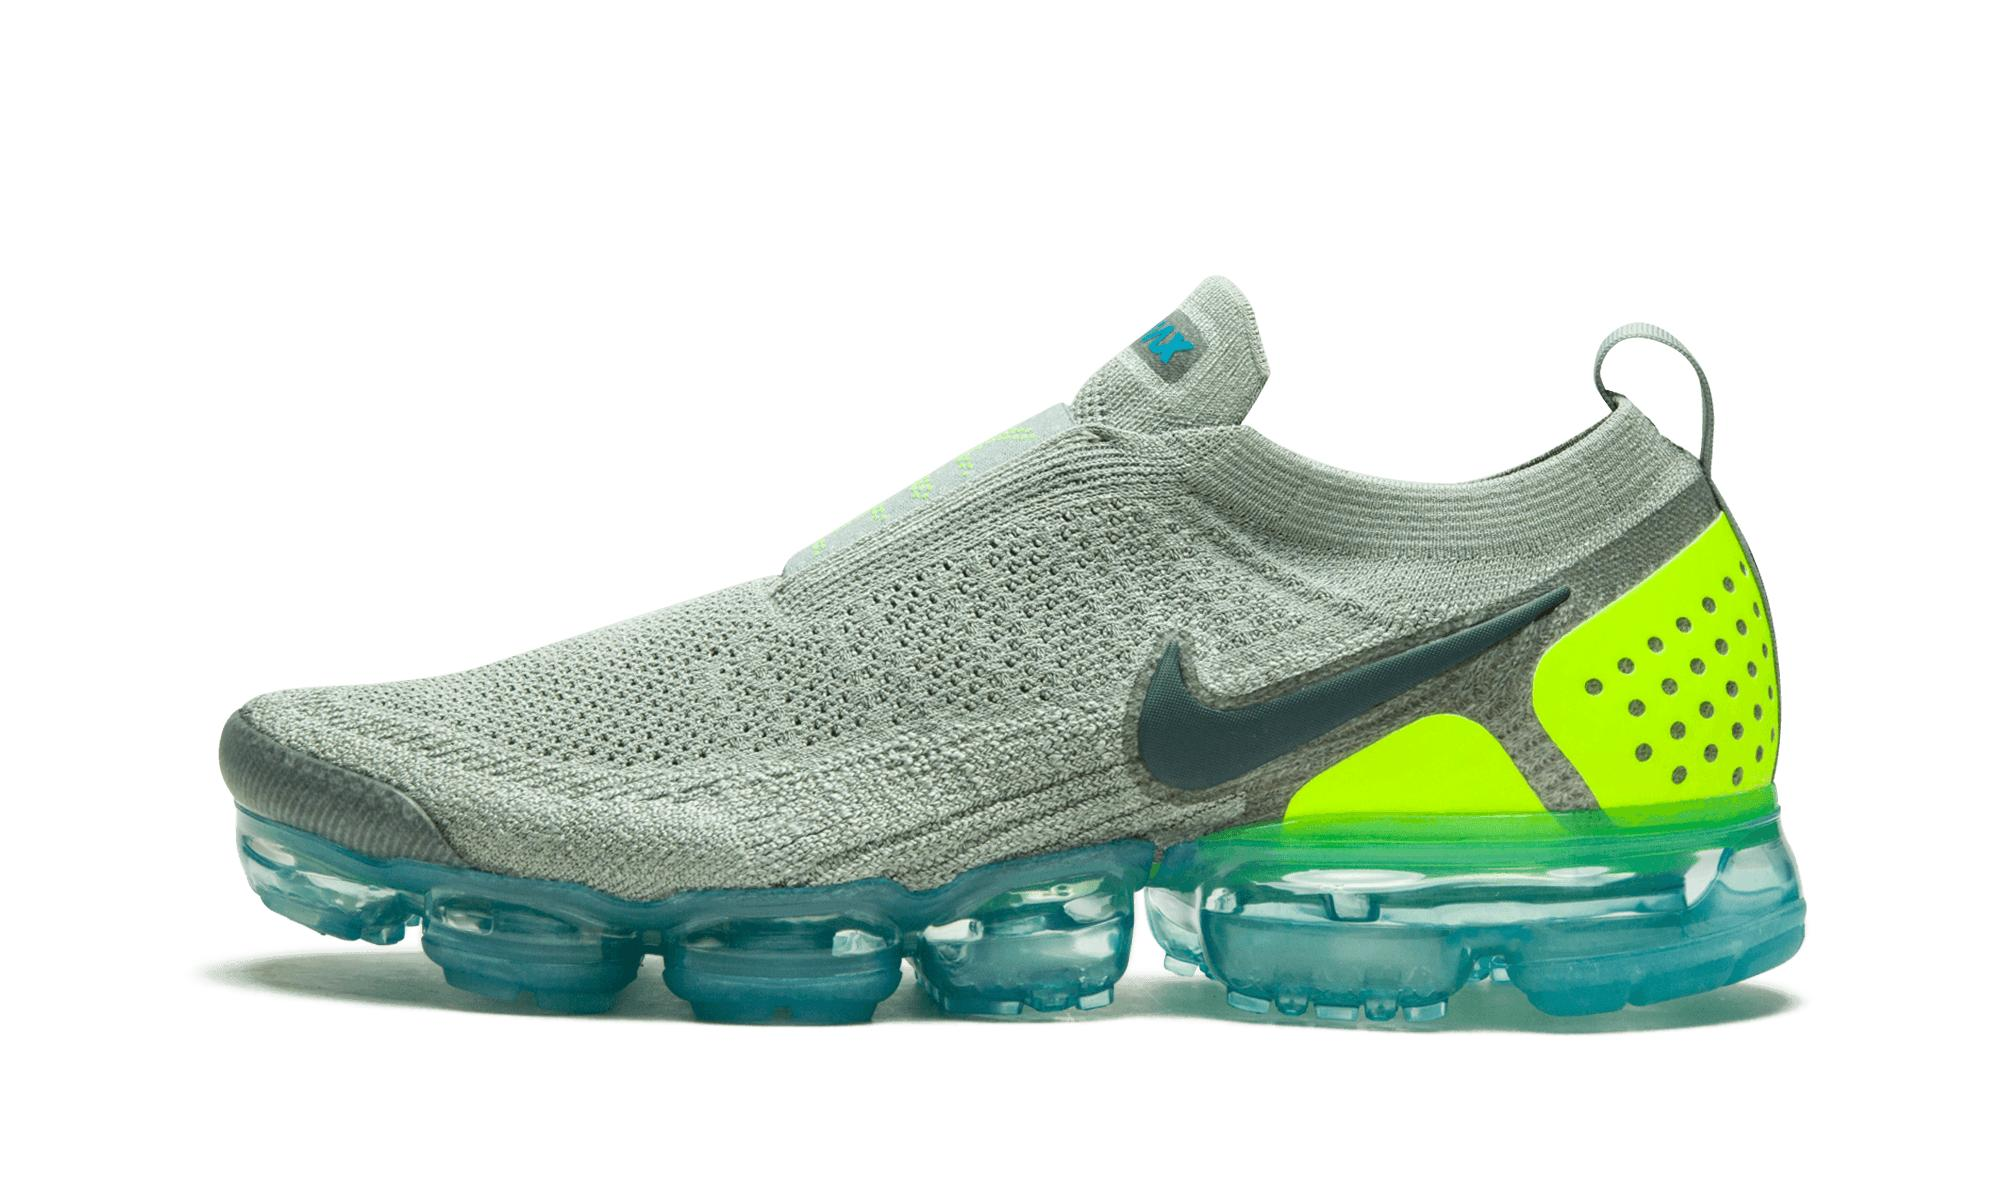 035ea86cbc91 Lyst - Nike Air Vapormax Fk Moc 2 for Men